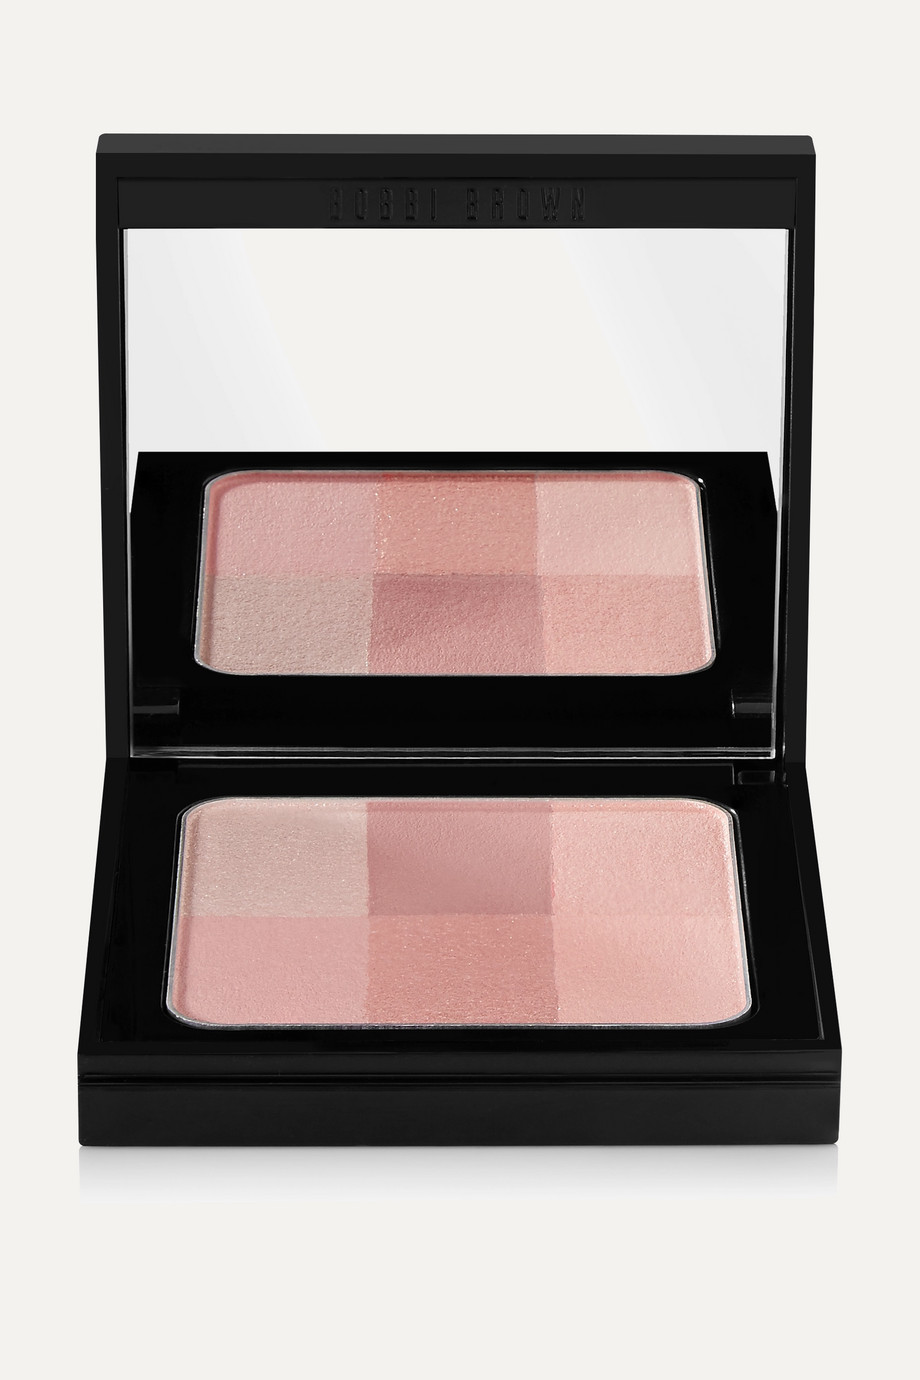 Bobbi Brown Brightening Brick - Pink